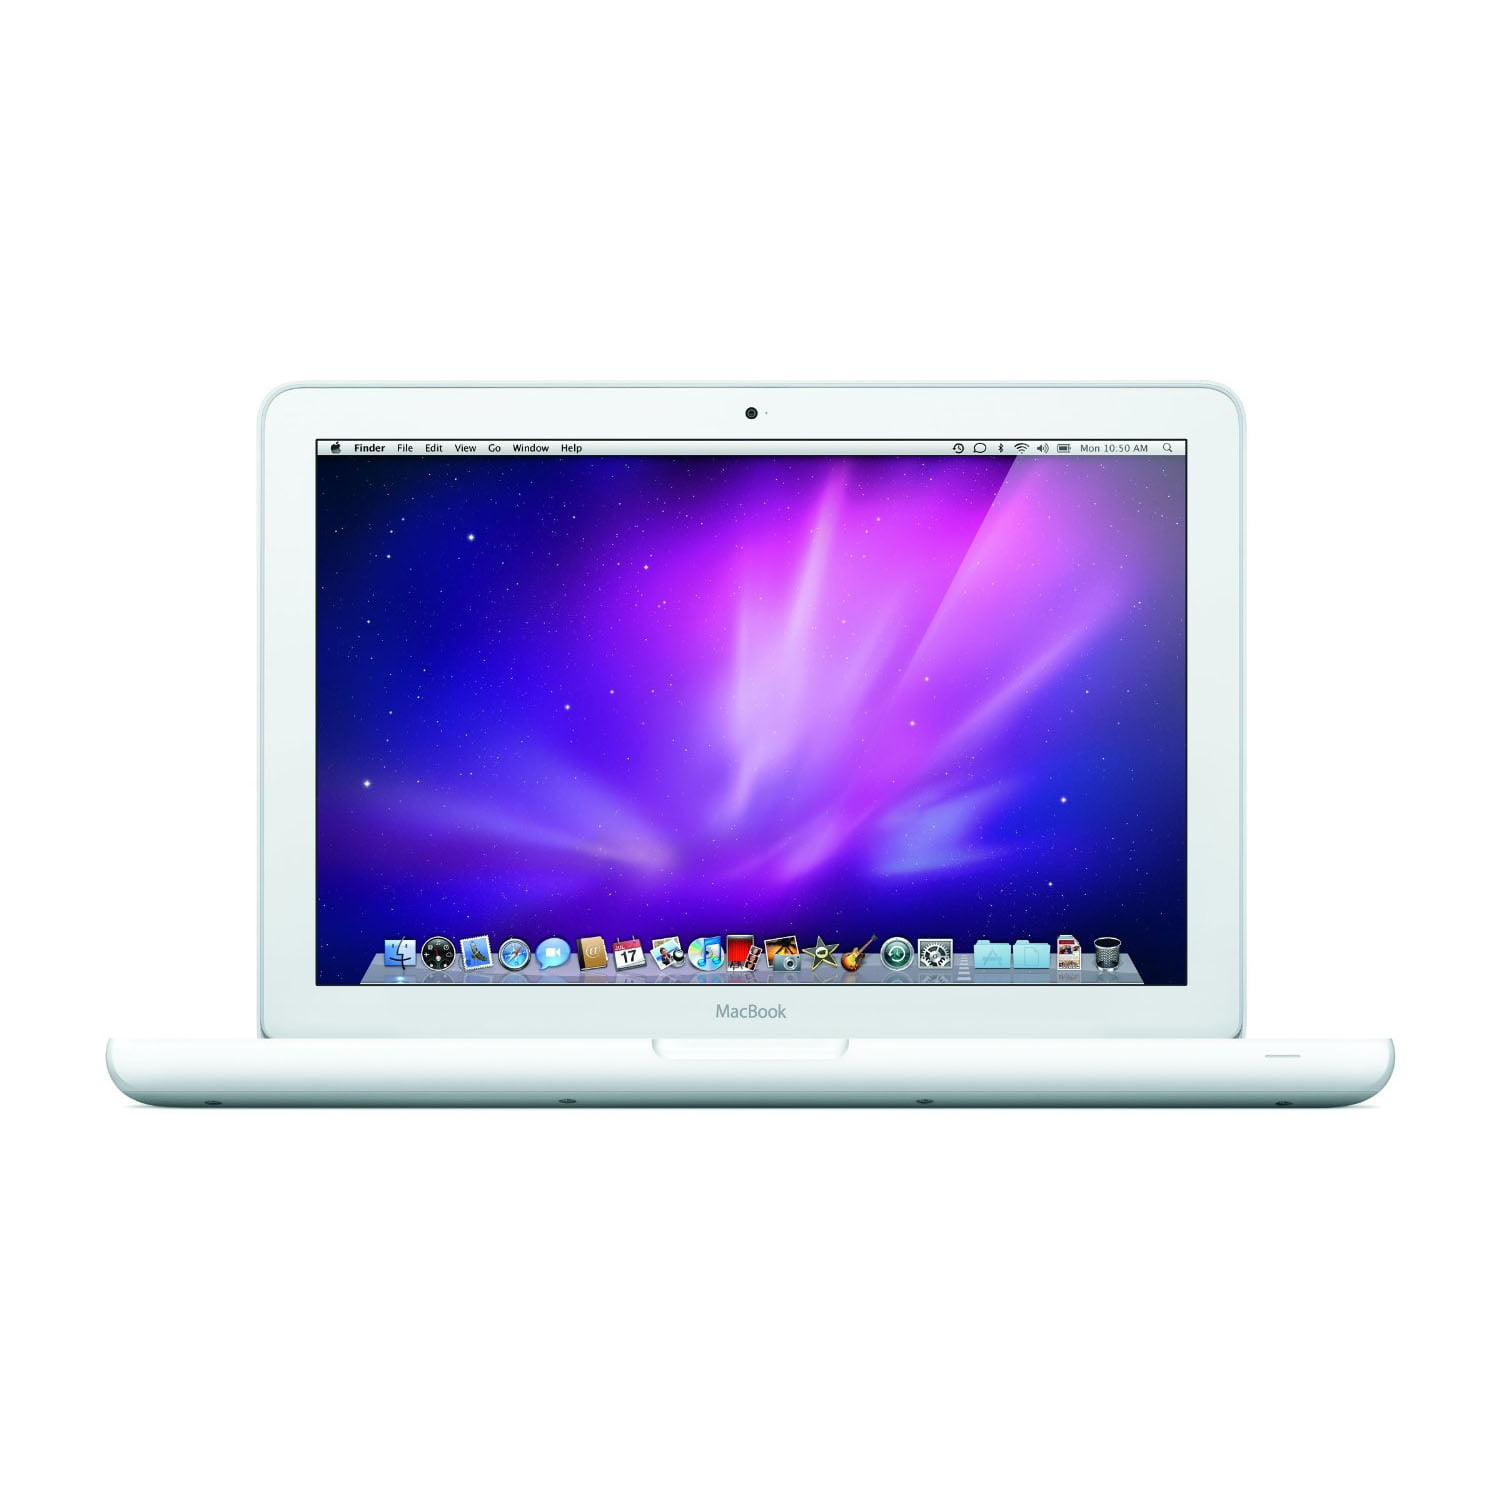 "Refurbished Apple MacBook 13.3"" Laptop Intel Core 2 Duo P7550 2.26GHz 250GB 2GB - MC207LLA"